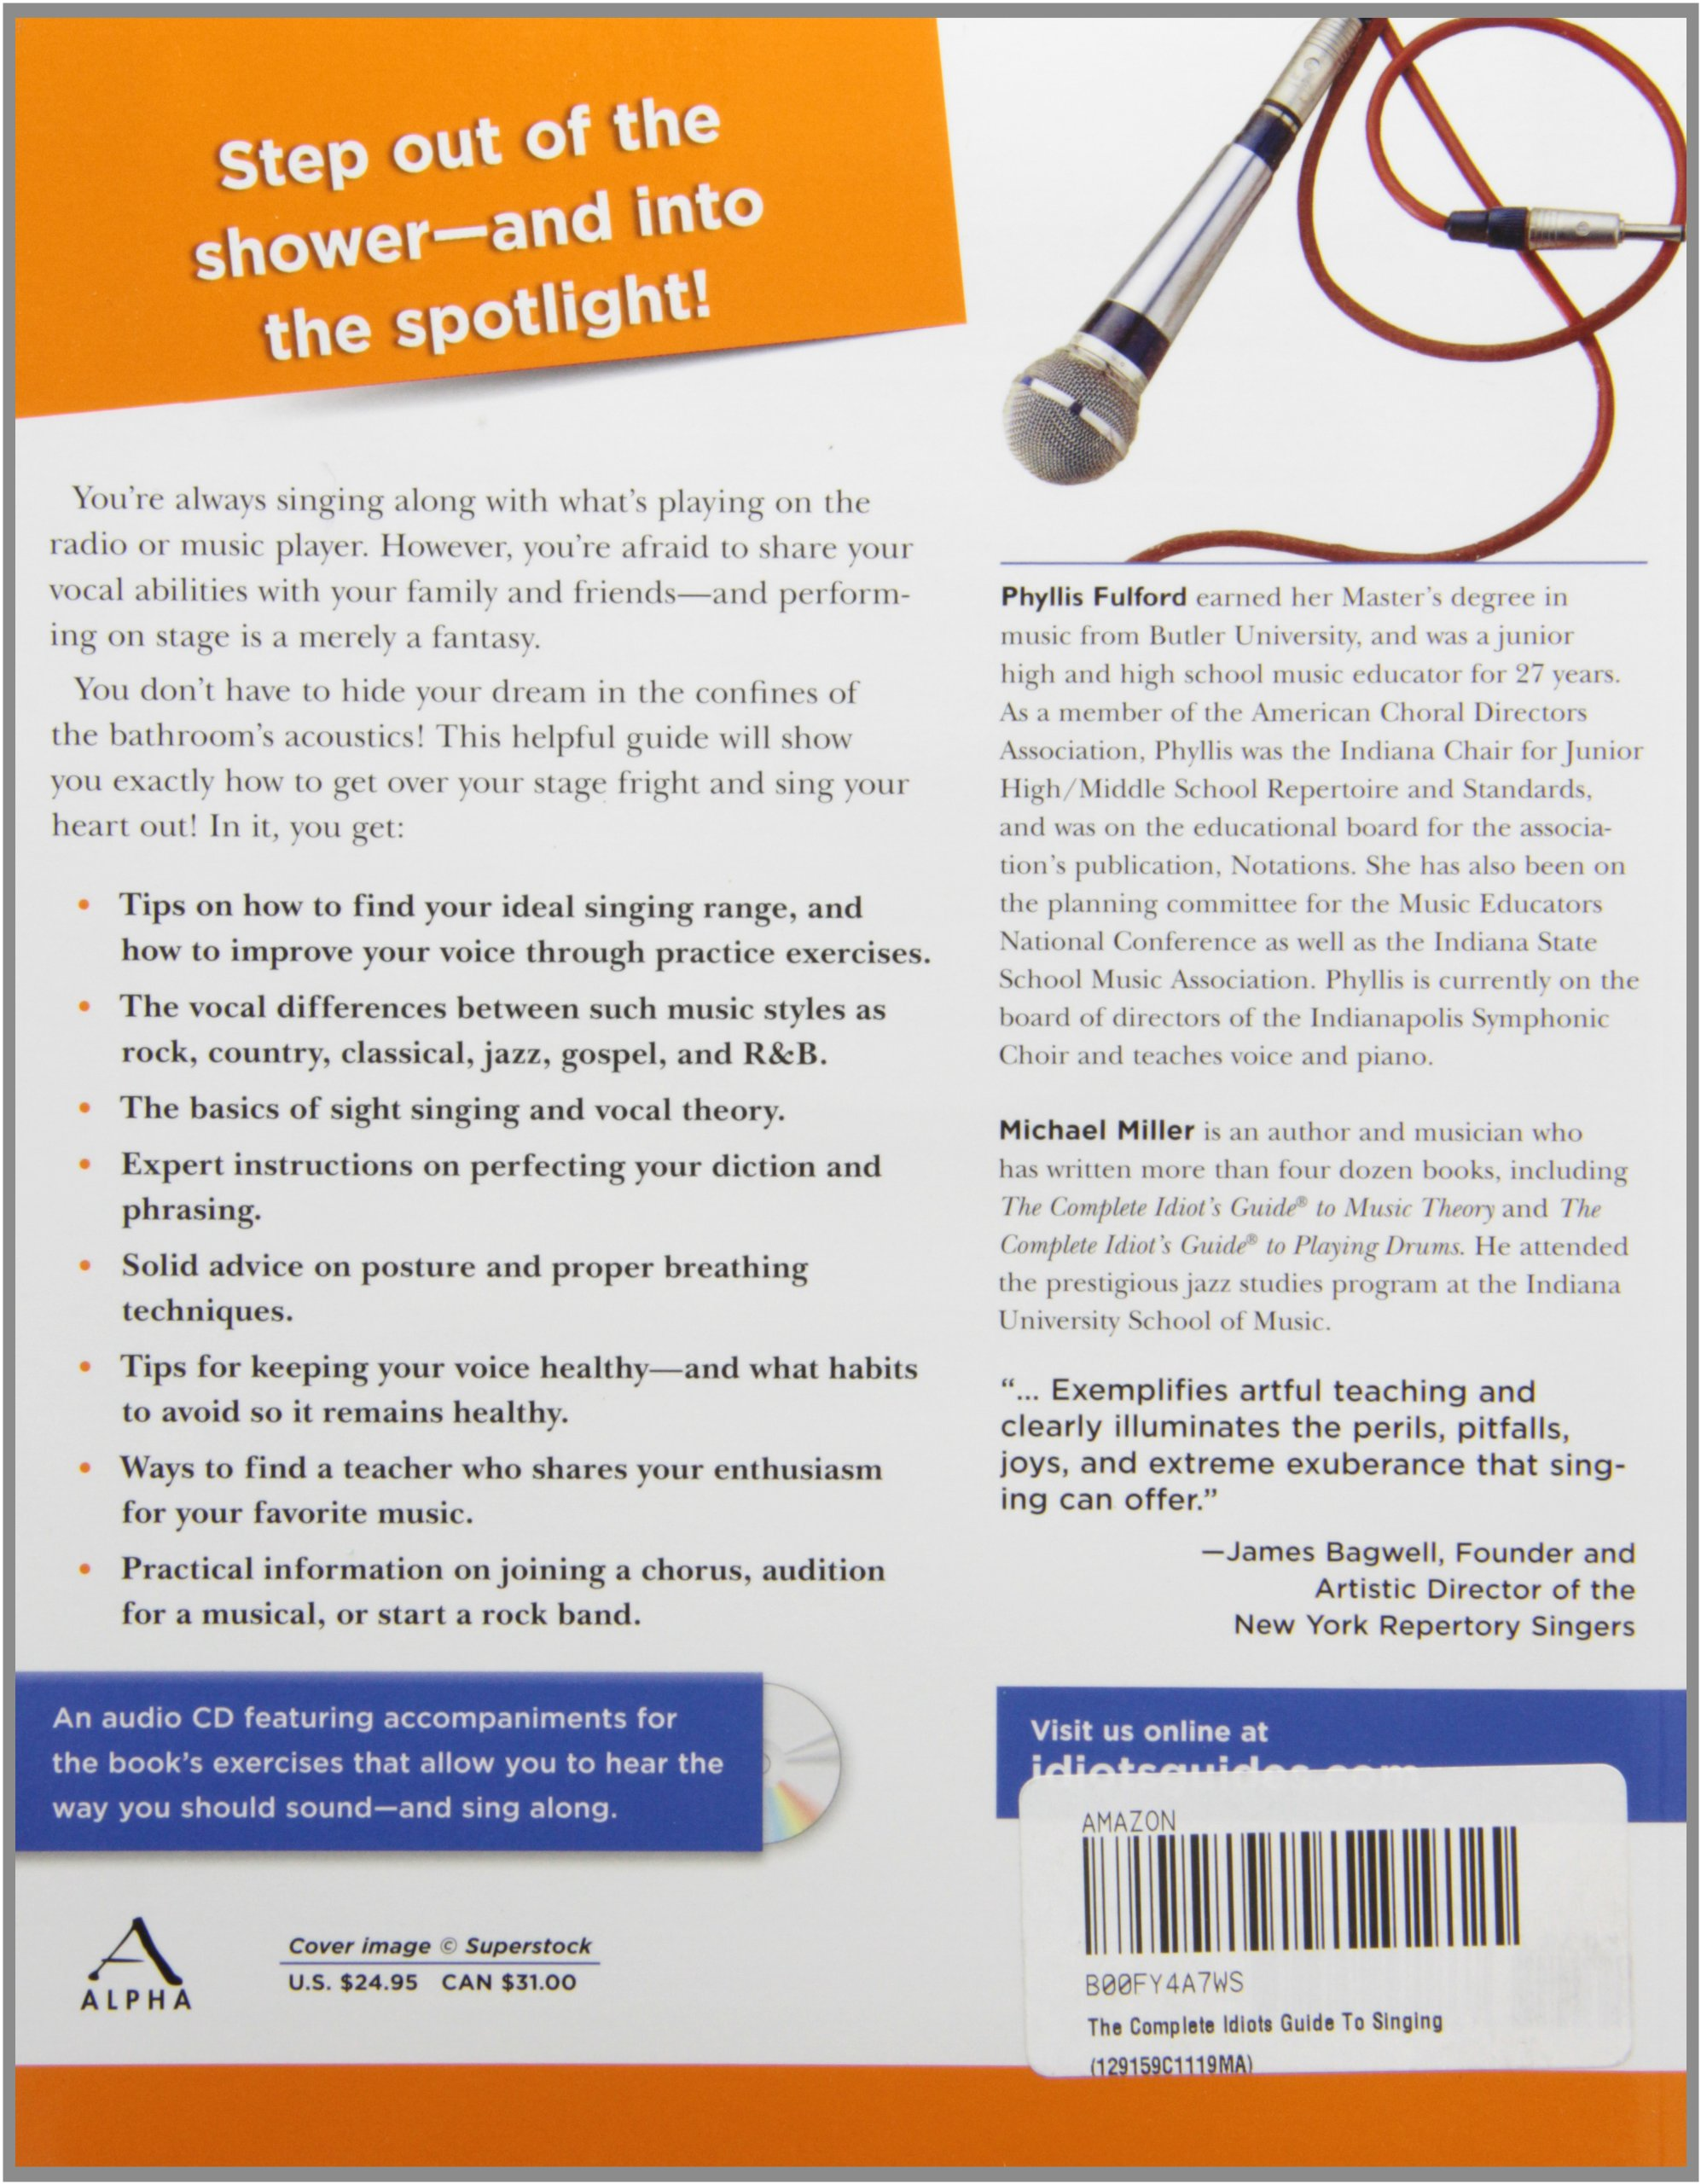 The complete idiot's guide to singing (complete idiot's guide to.